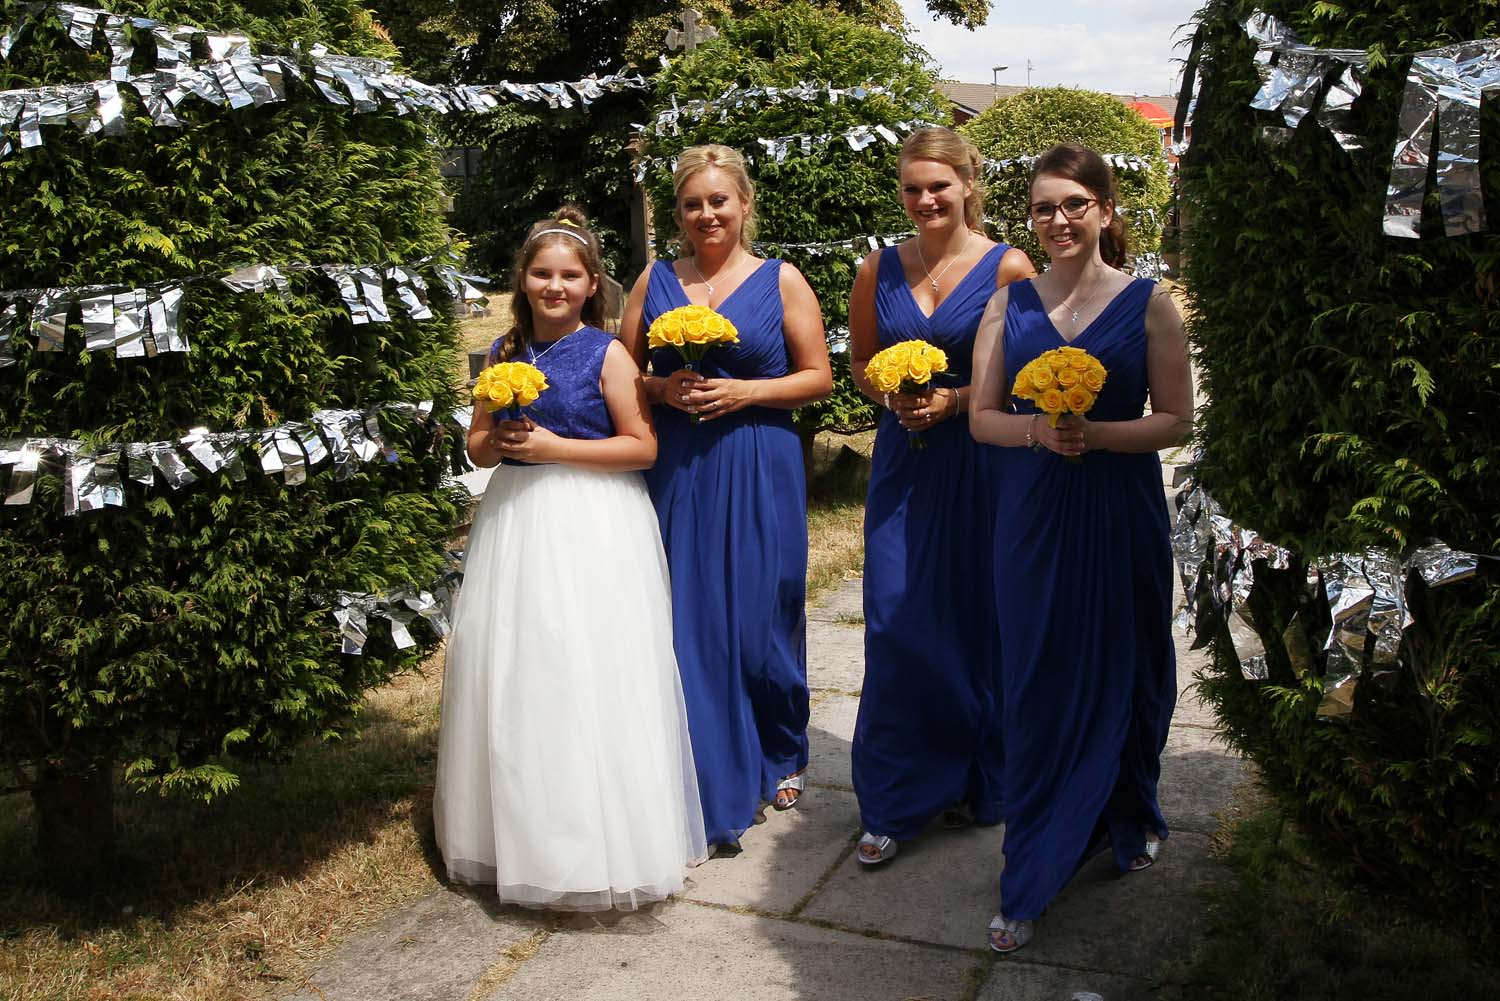 3 bridesmaids and a flower gil in royal blue dresses with lemon posies.